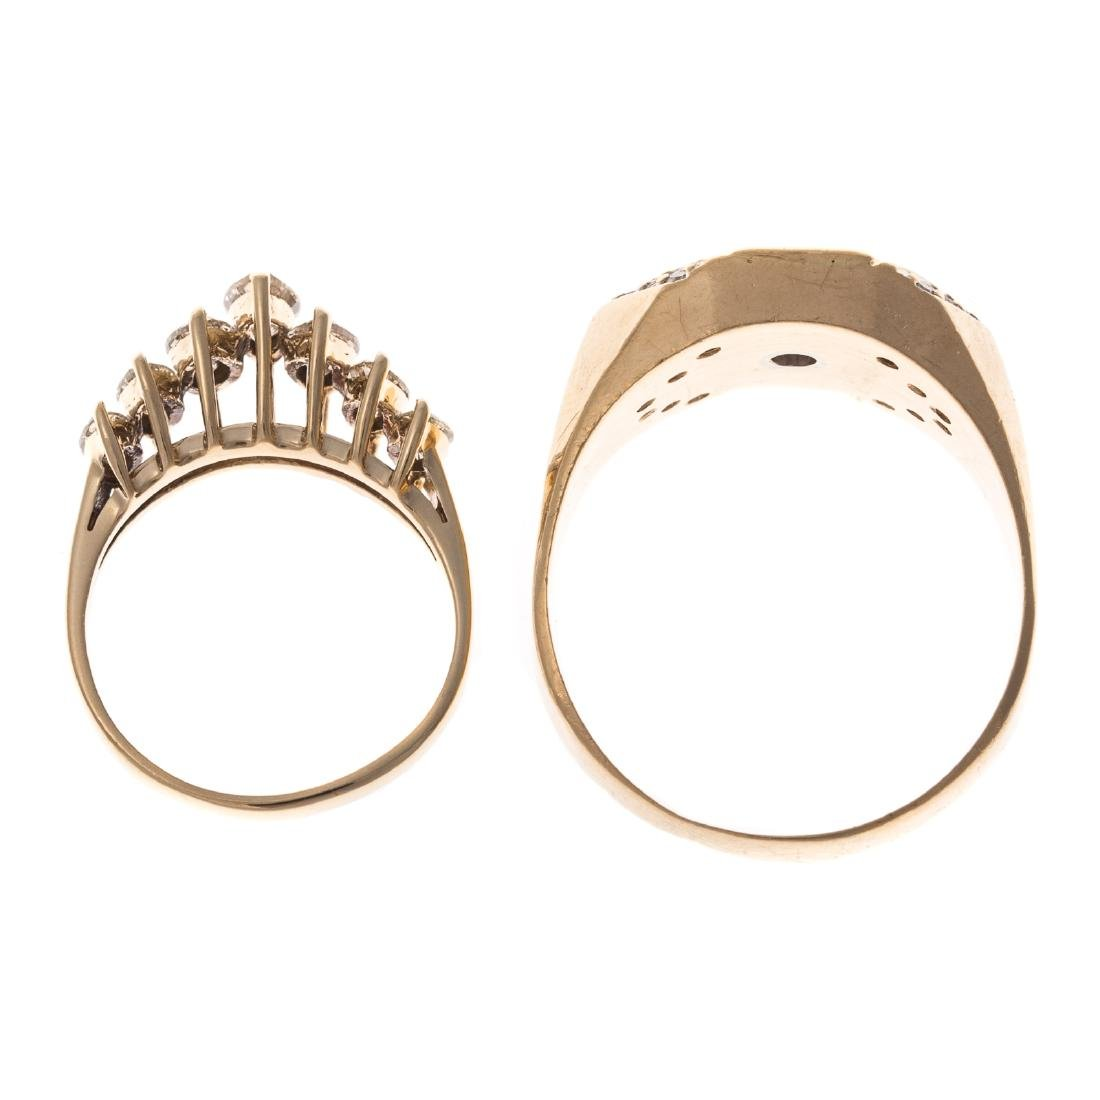 A Pair of Gold Diamond Rings - 3